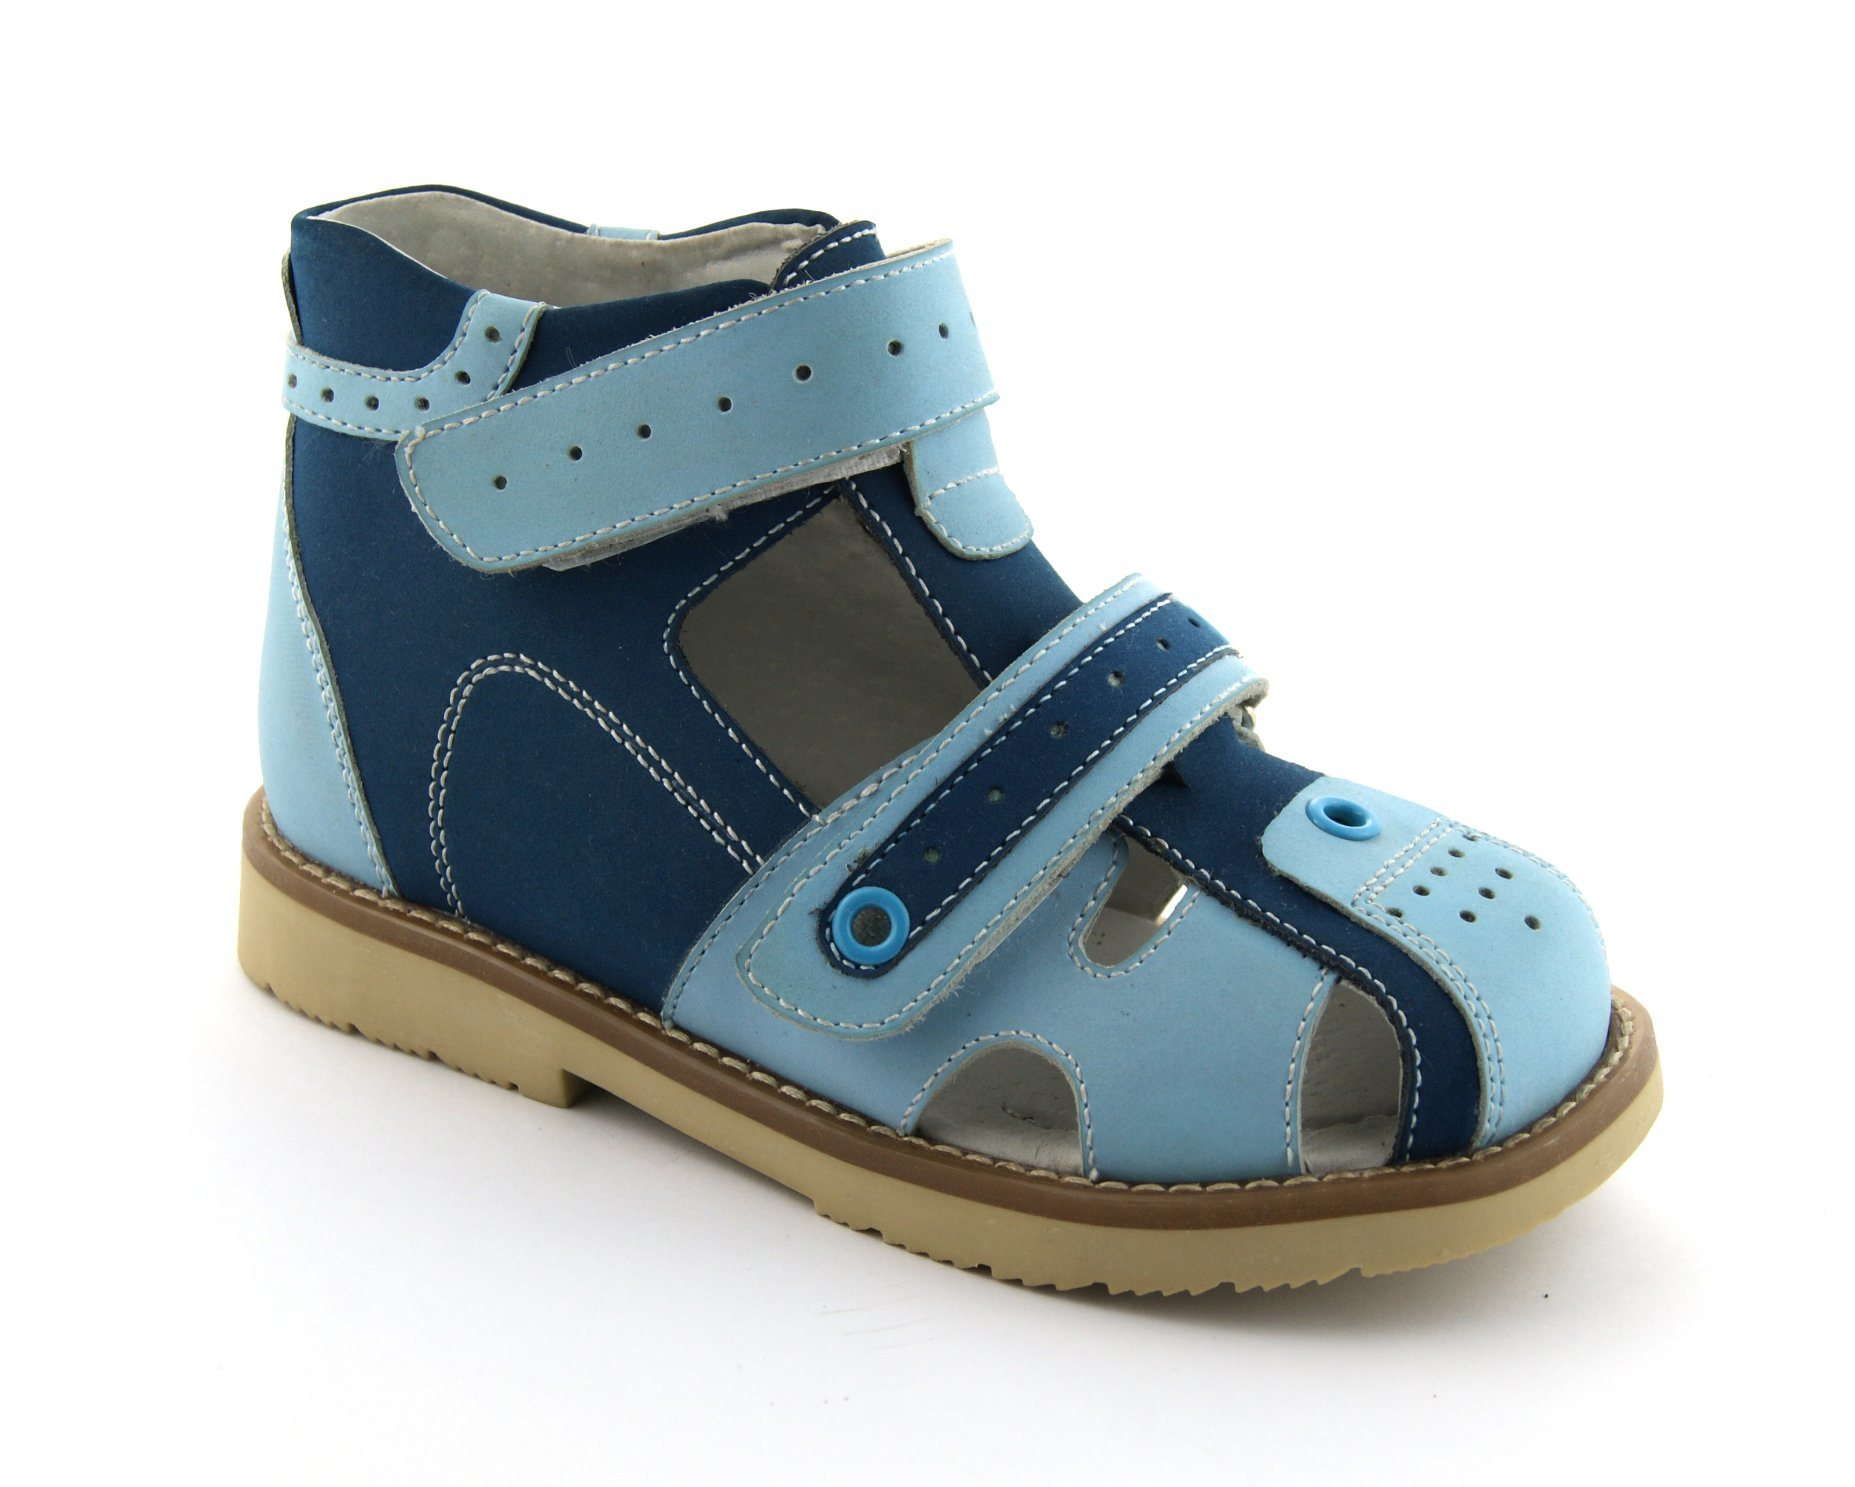 Kids Orthopedic Shoes with Hard Heel Counter for Health Wearing